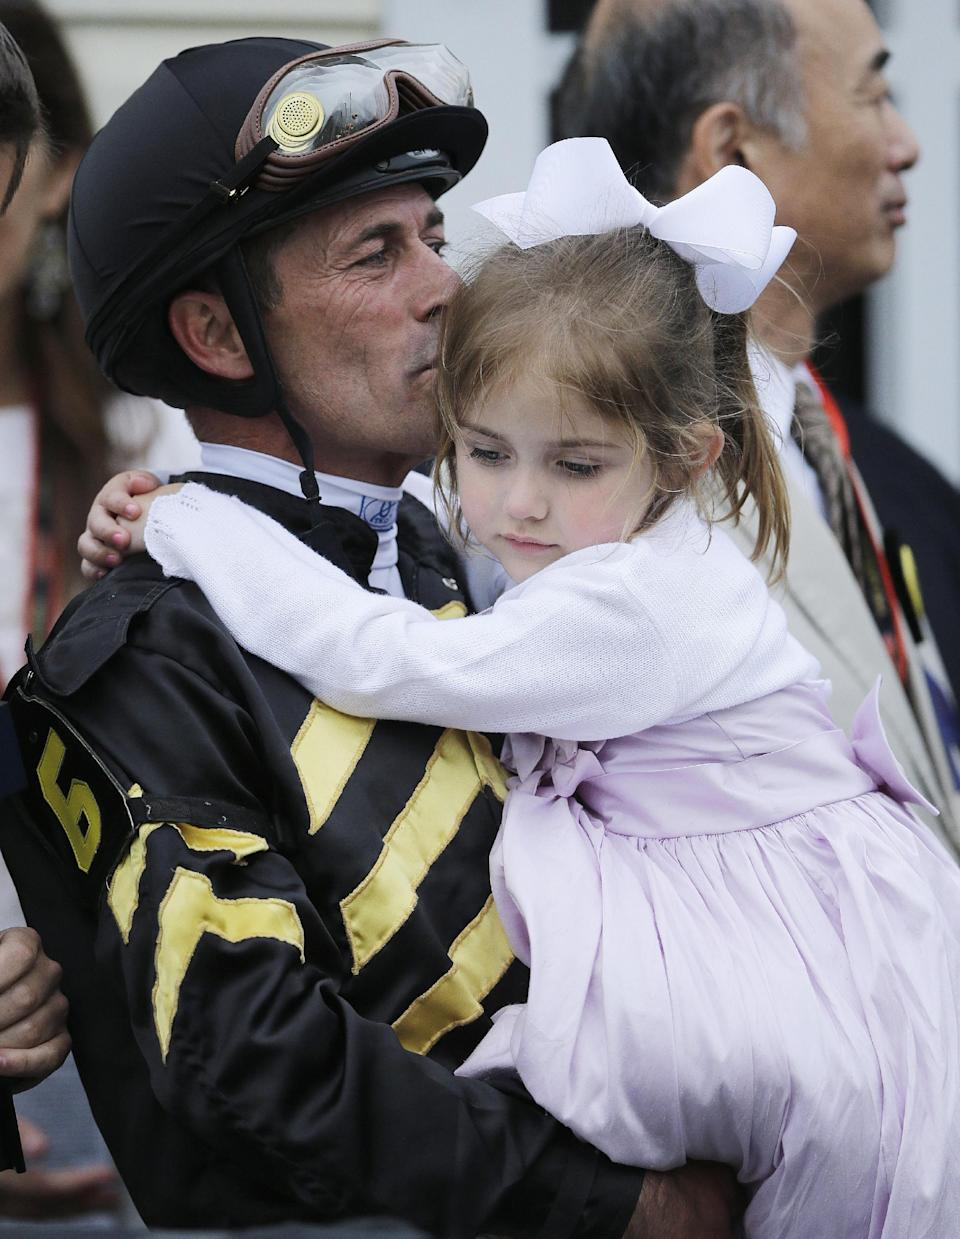 Jockey Gary Stevens kisses his daughter Maddie Stevens in the winner's circle after riding Oxbow to win the 138th Preakness Stakes horse race at Pimlico Race Course, Saturday, May 18, 2013, in Baltimore. (AP Photo/Matt Slocum)